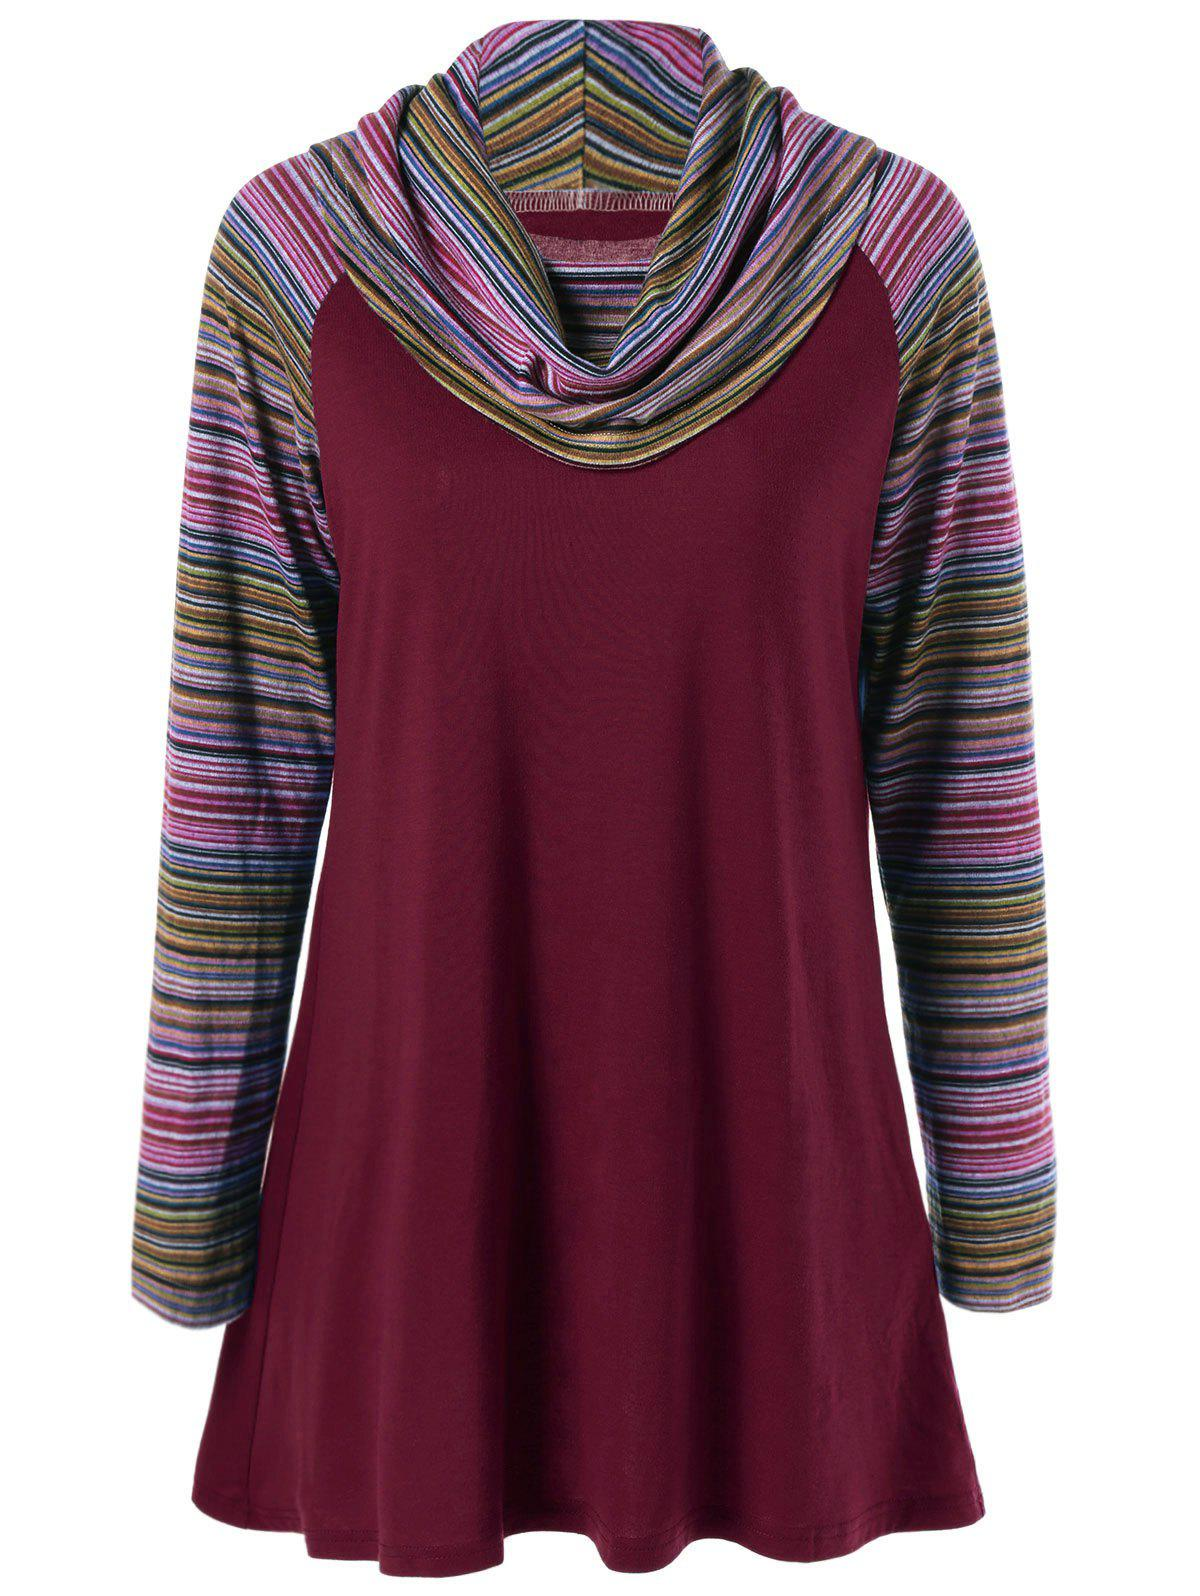 Cowl Neck Colorful Striped T-Shirt 193634108